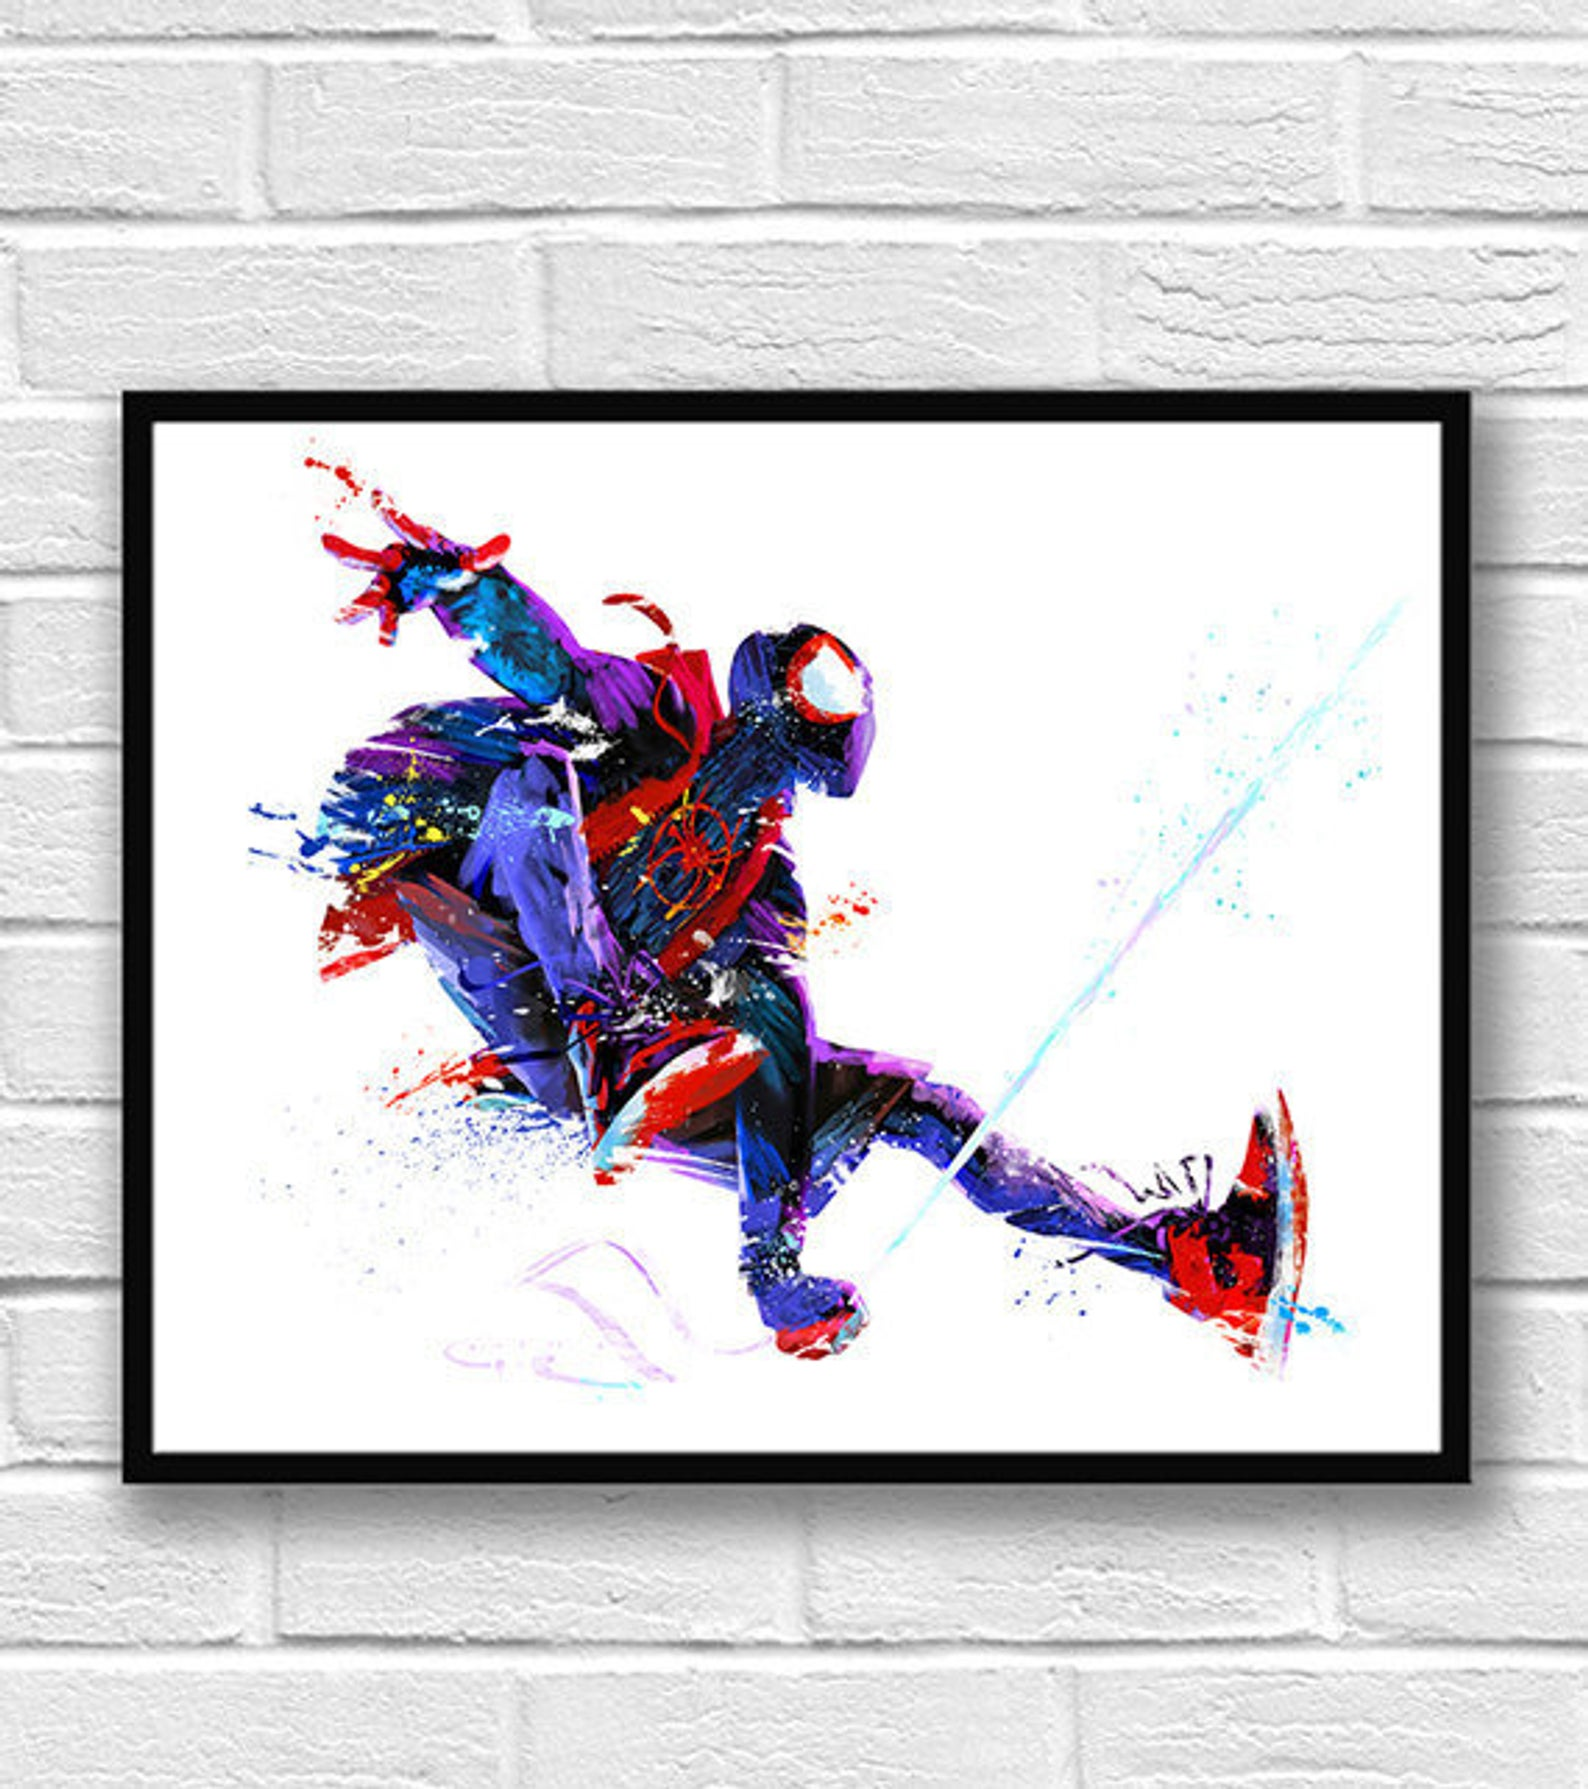 Miles Morales Poster Spiderman Marvel Wall Art Into the SpiderVerse Print Avenge